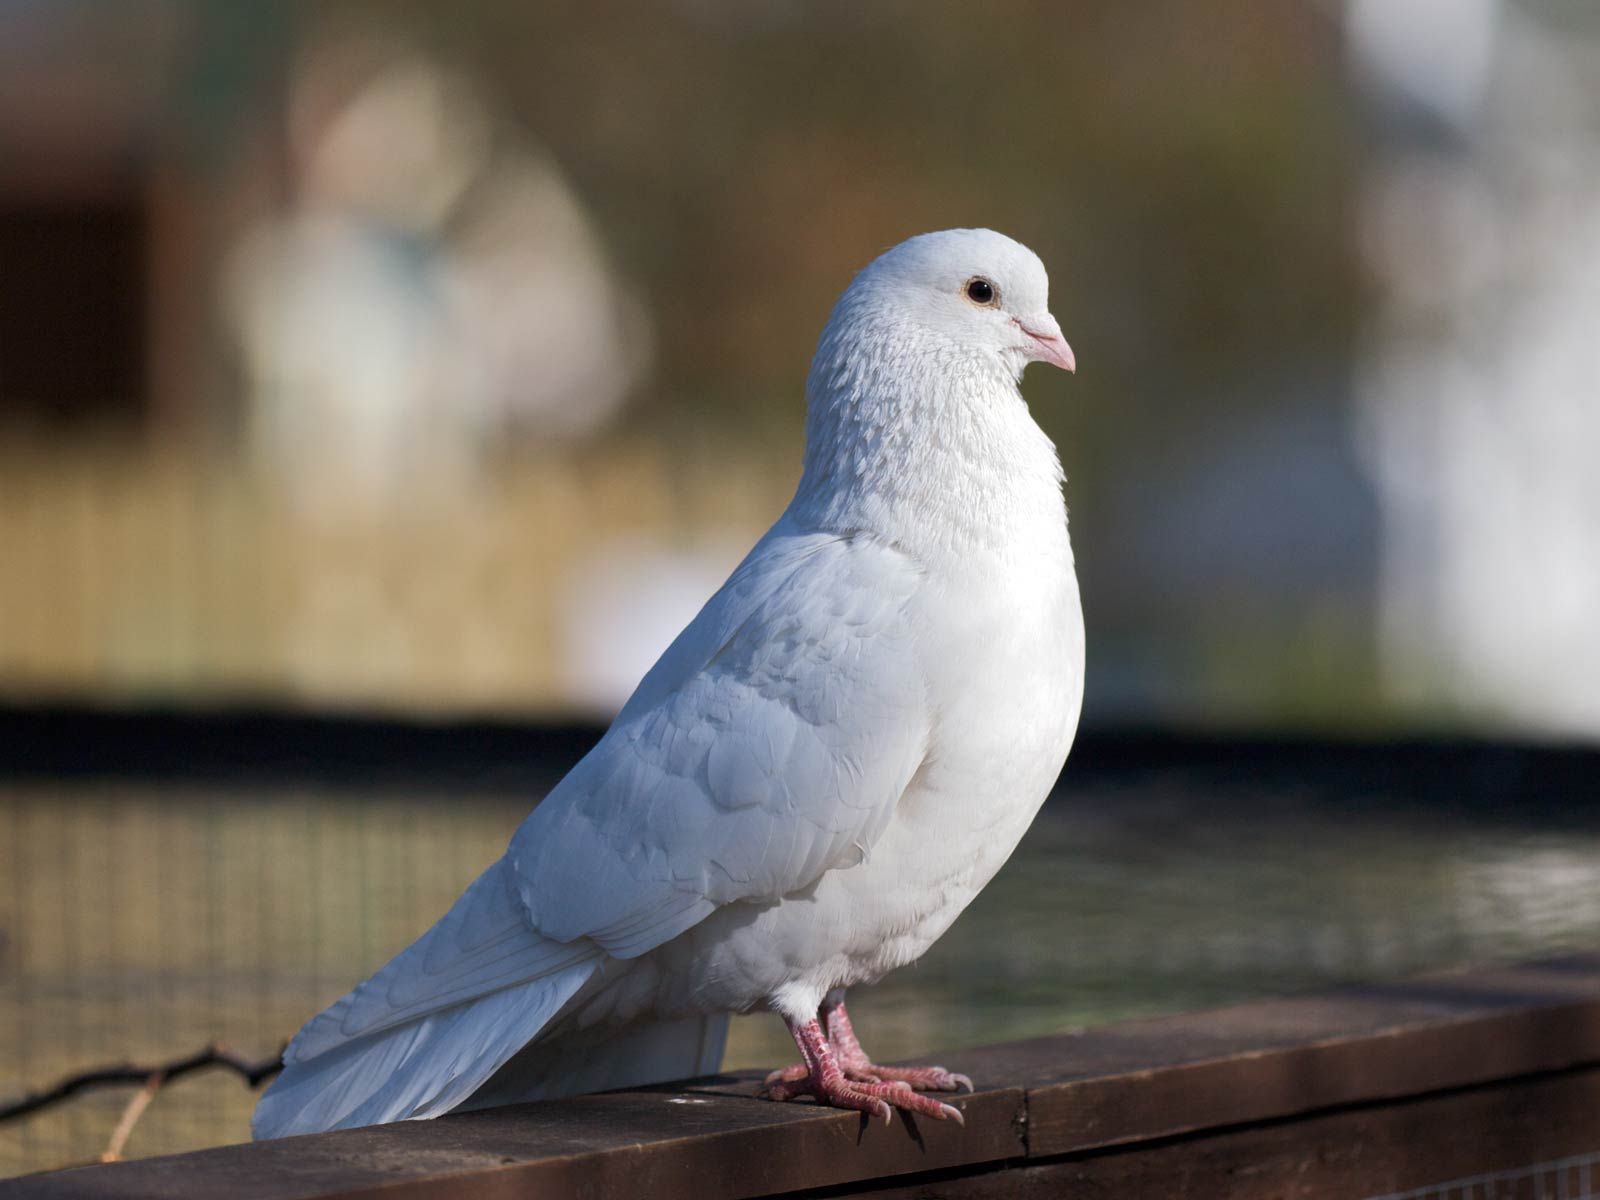 White Dove Peace And Purity Pigeon Bird White Pigeon Bird Wallpaper